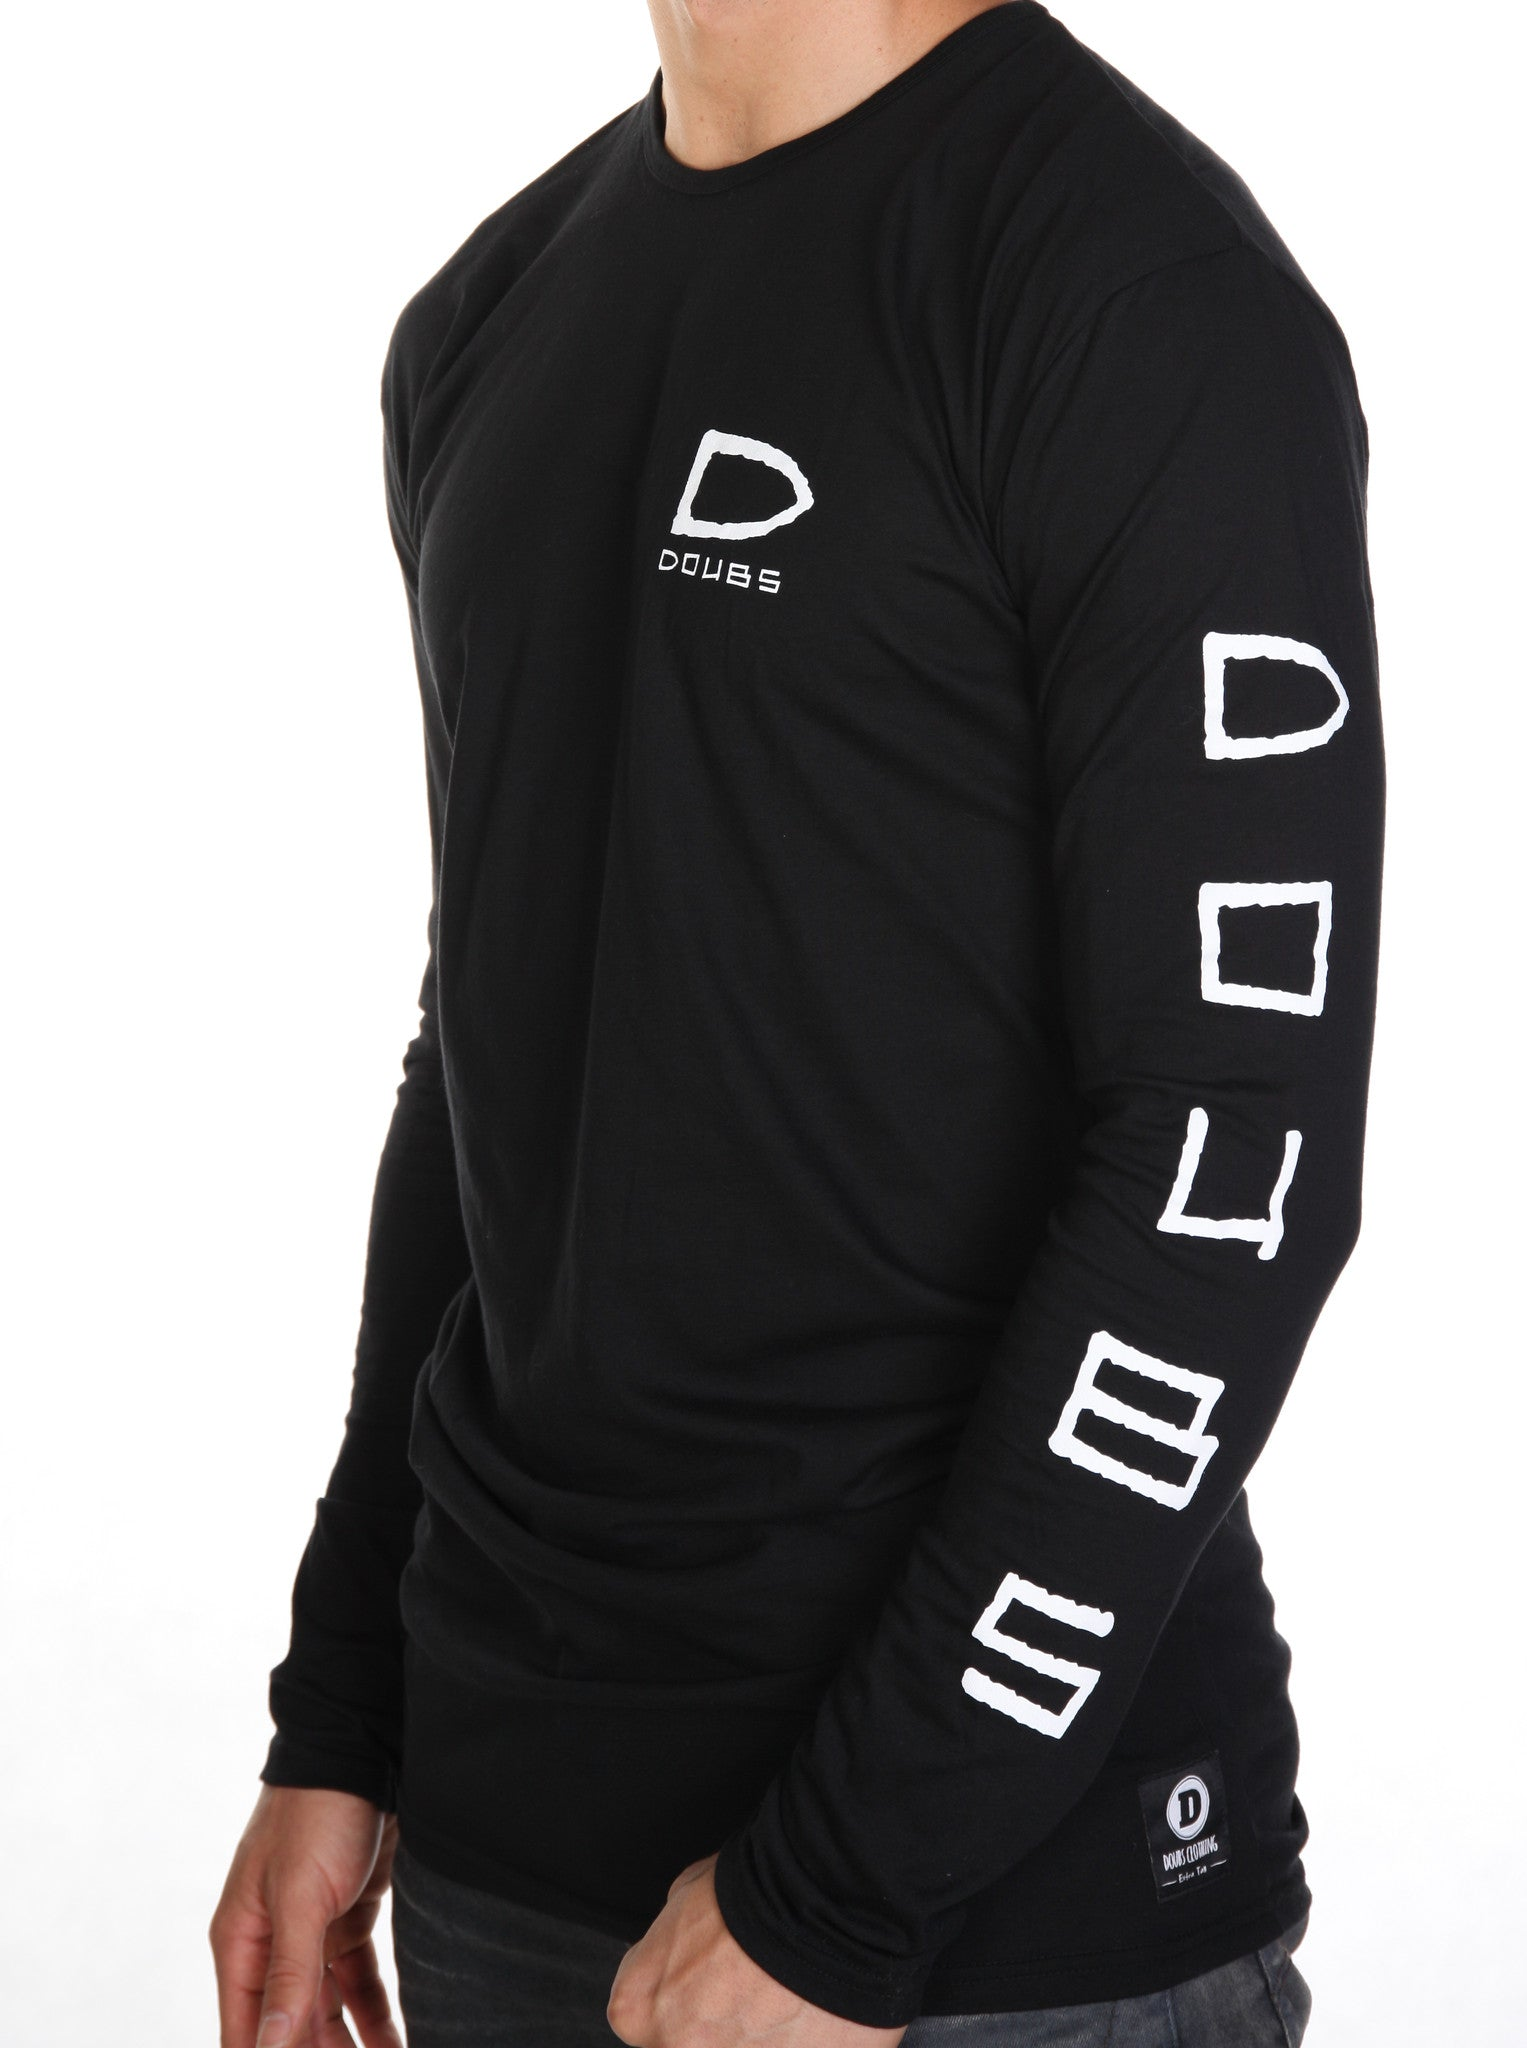 Bailez Long Sleeve - Black